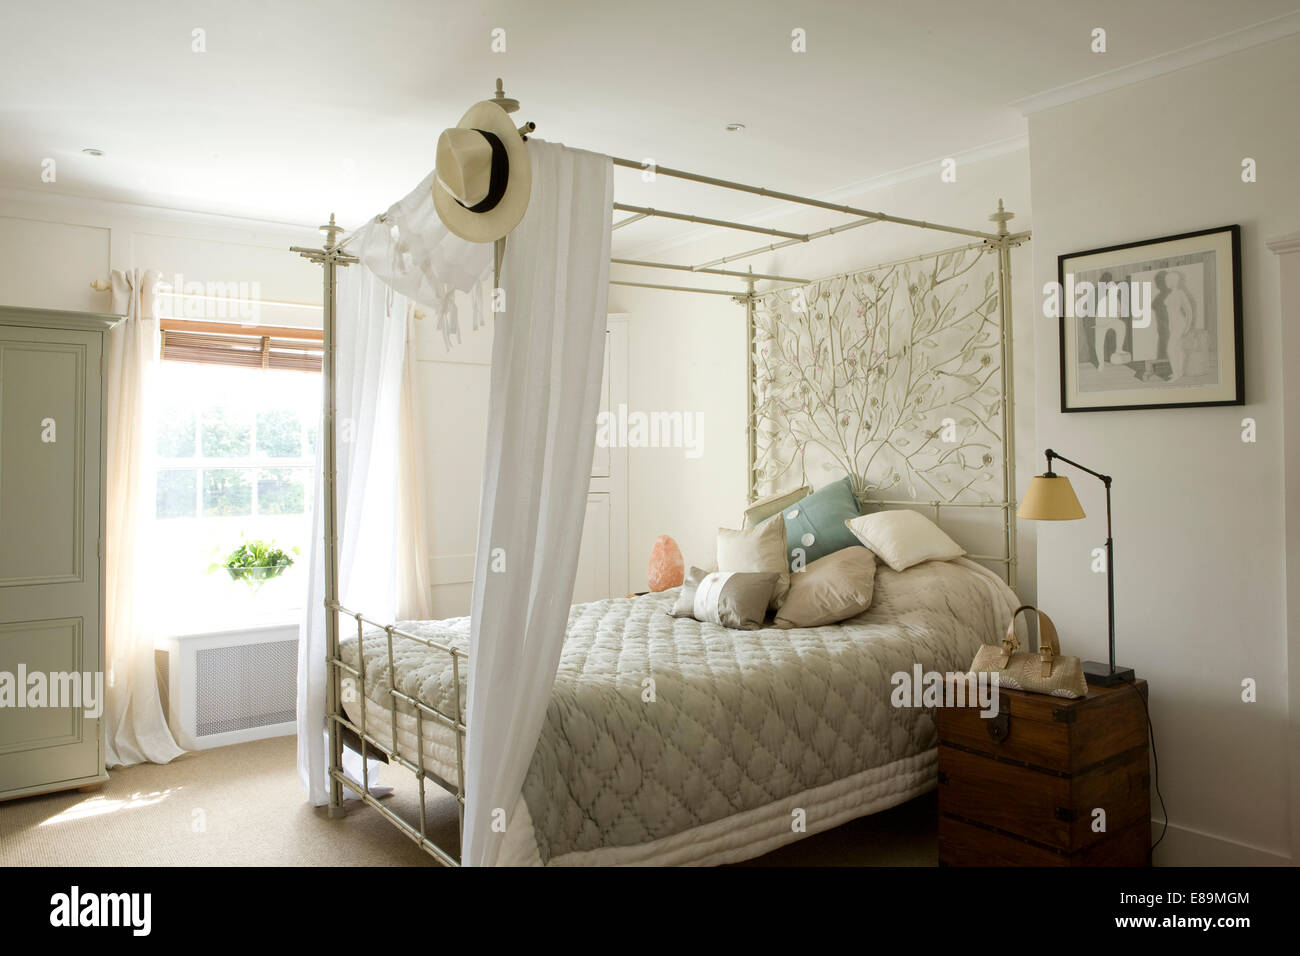 White Cotton Drapes On Four Poster Bed With Ornate Metalwork Panel In Country Bedroom